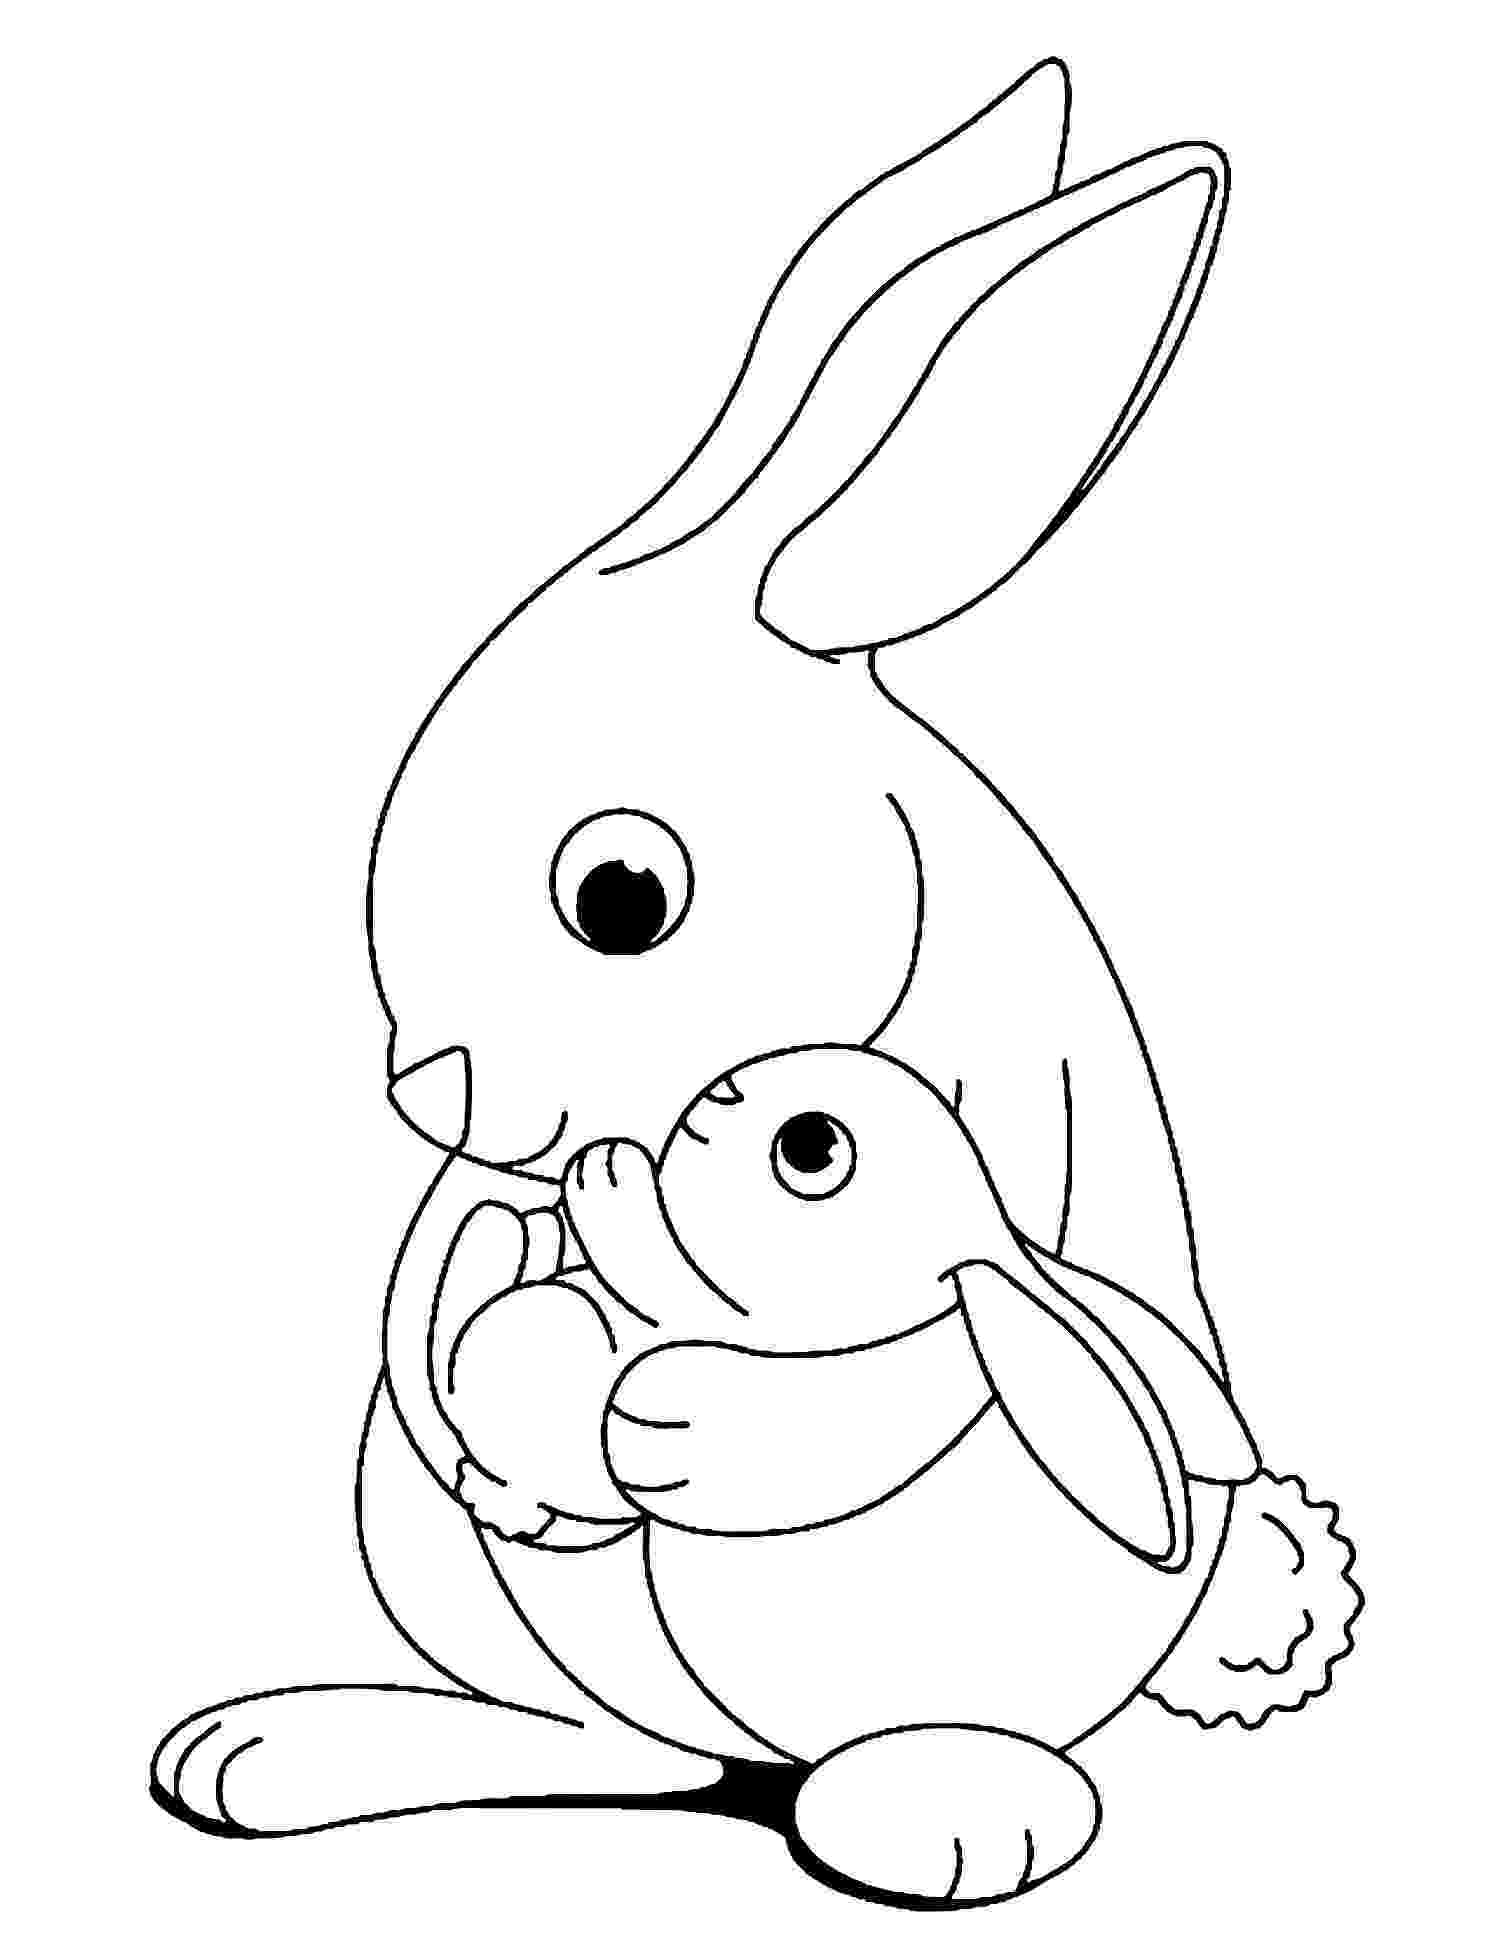 rabbit coloring pictures bunny coloring pages best coloring pages for kids coloring rabbit pictures 1 1